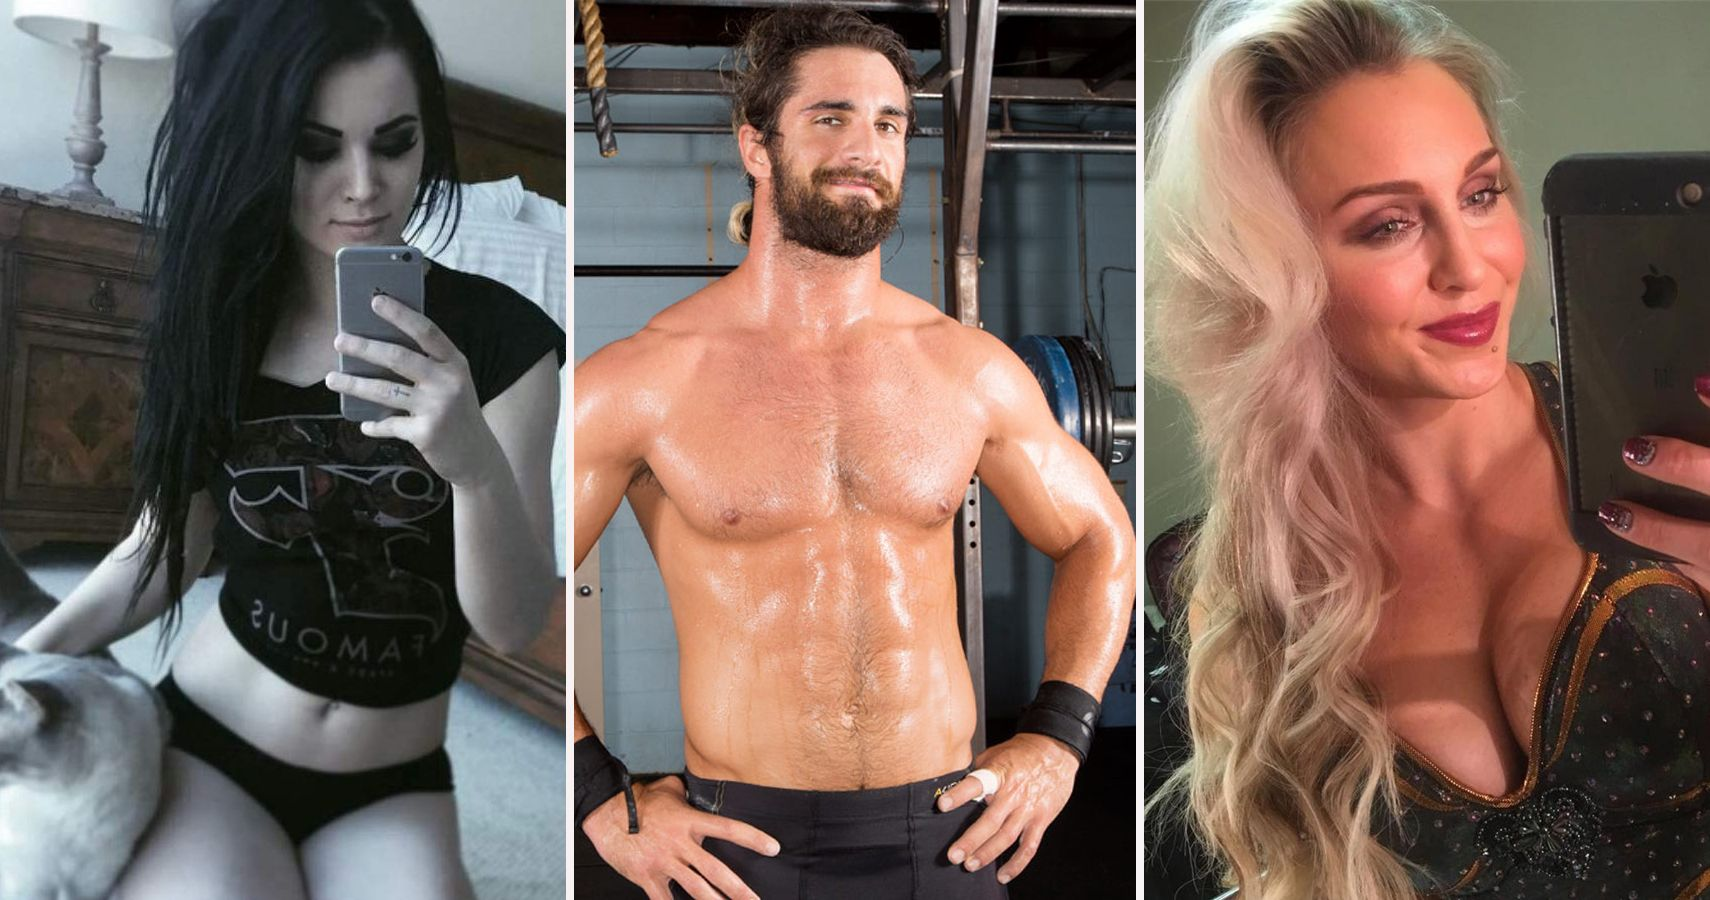 wwe warned of more superstar photo leaks | thesportster